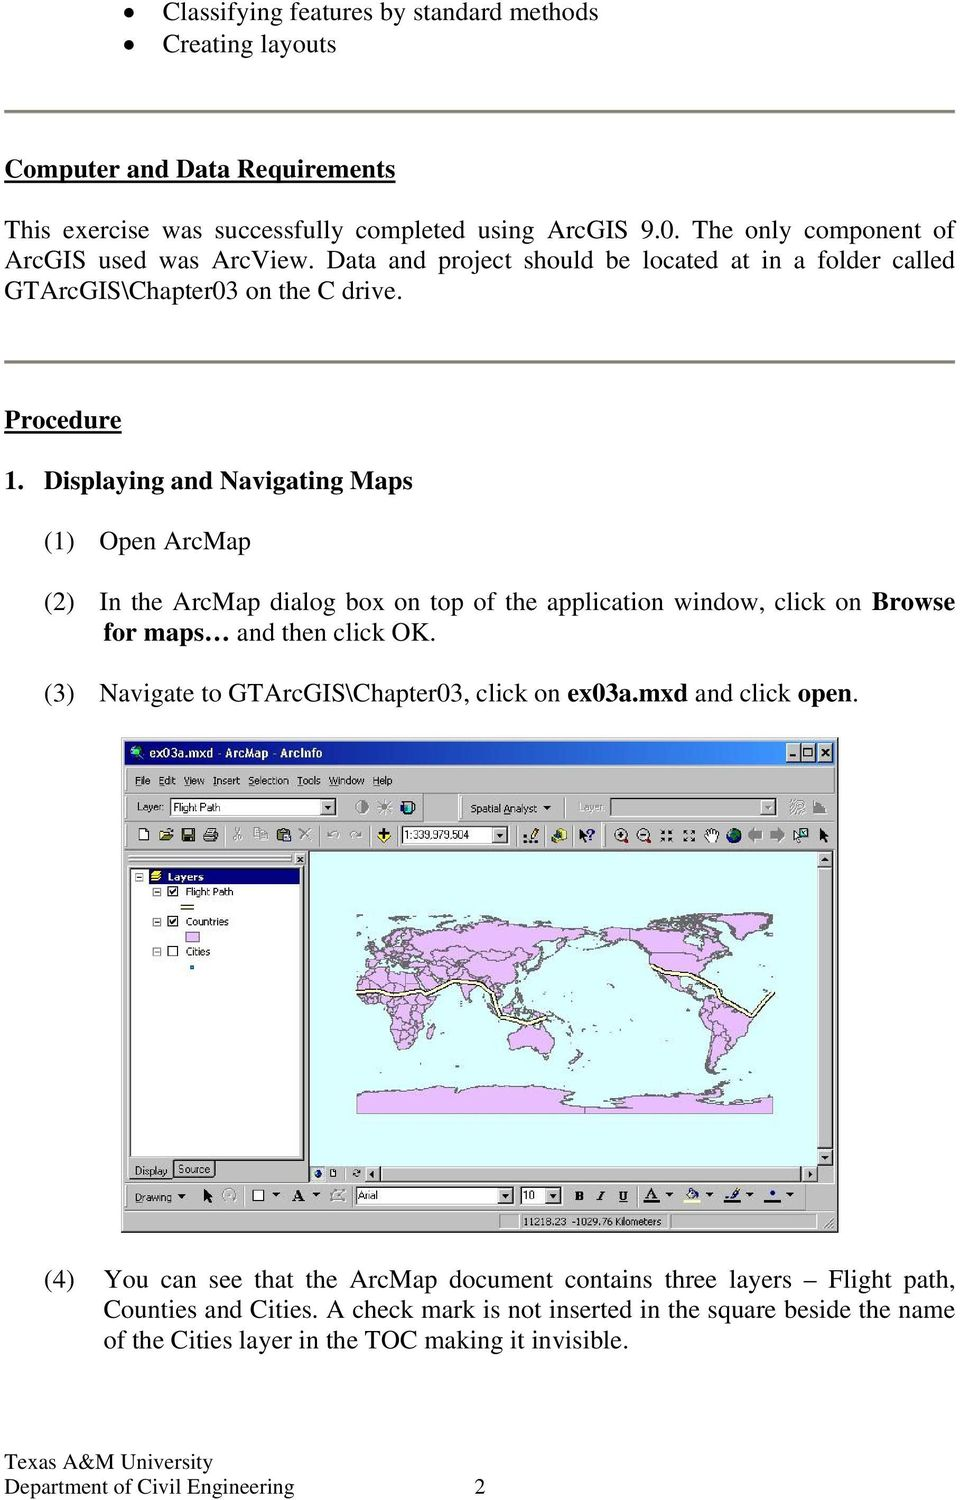 Displaying and Navigating Maps (1) Open ArcMap (2) In the ArcMap dialog box on top of the application window, click on Browse for maps and then click OK.